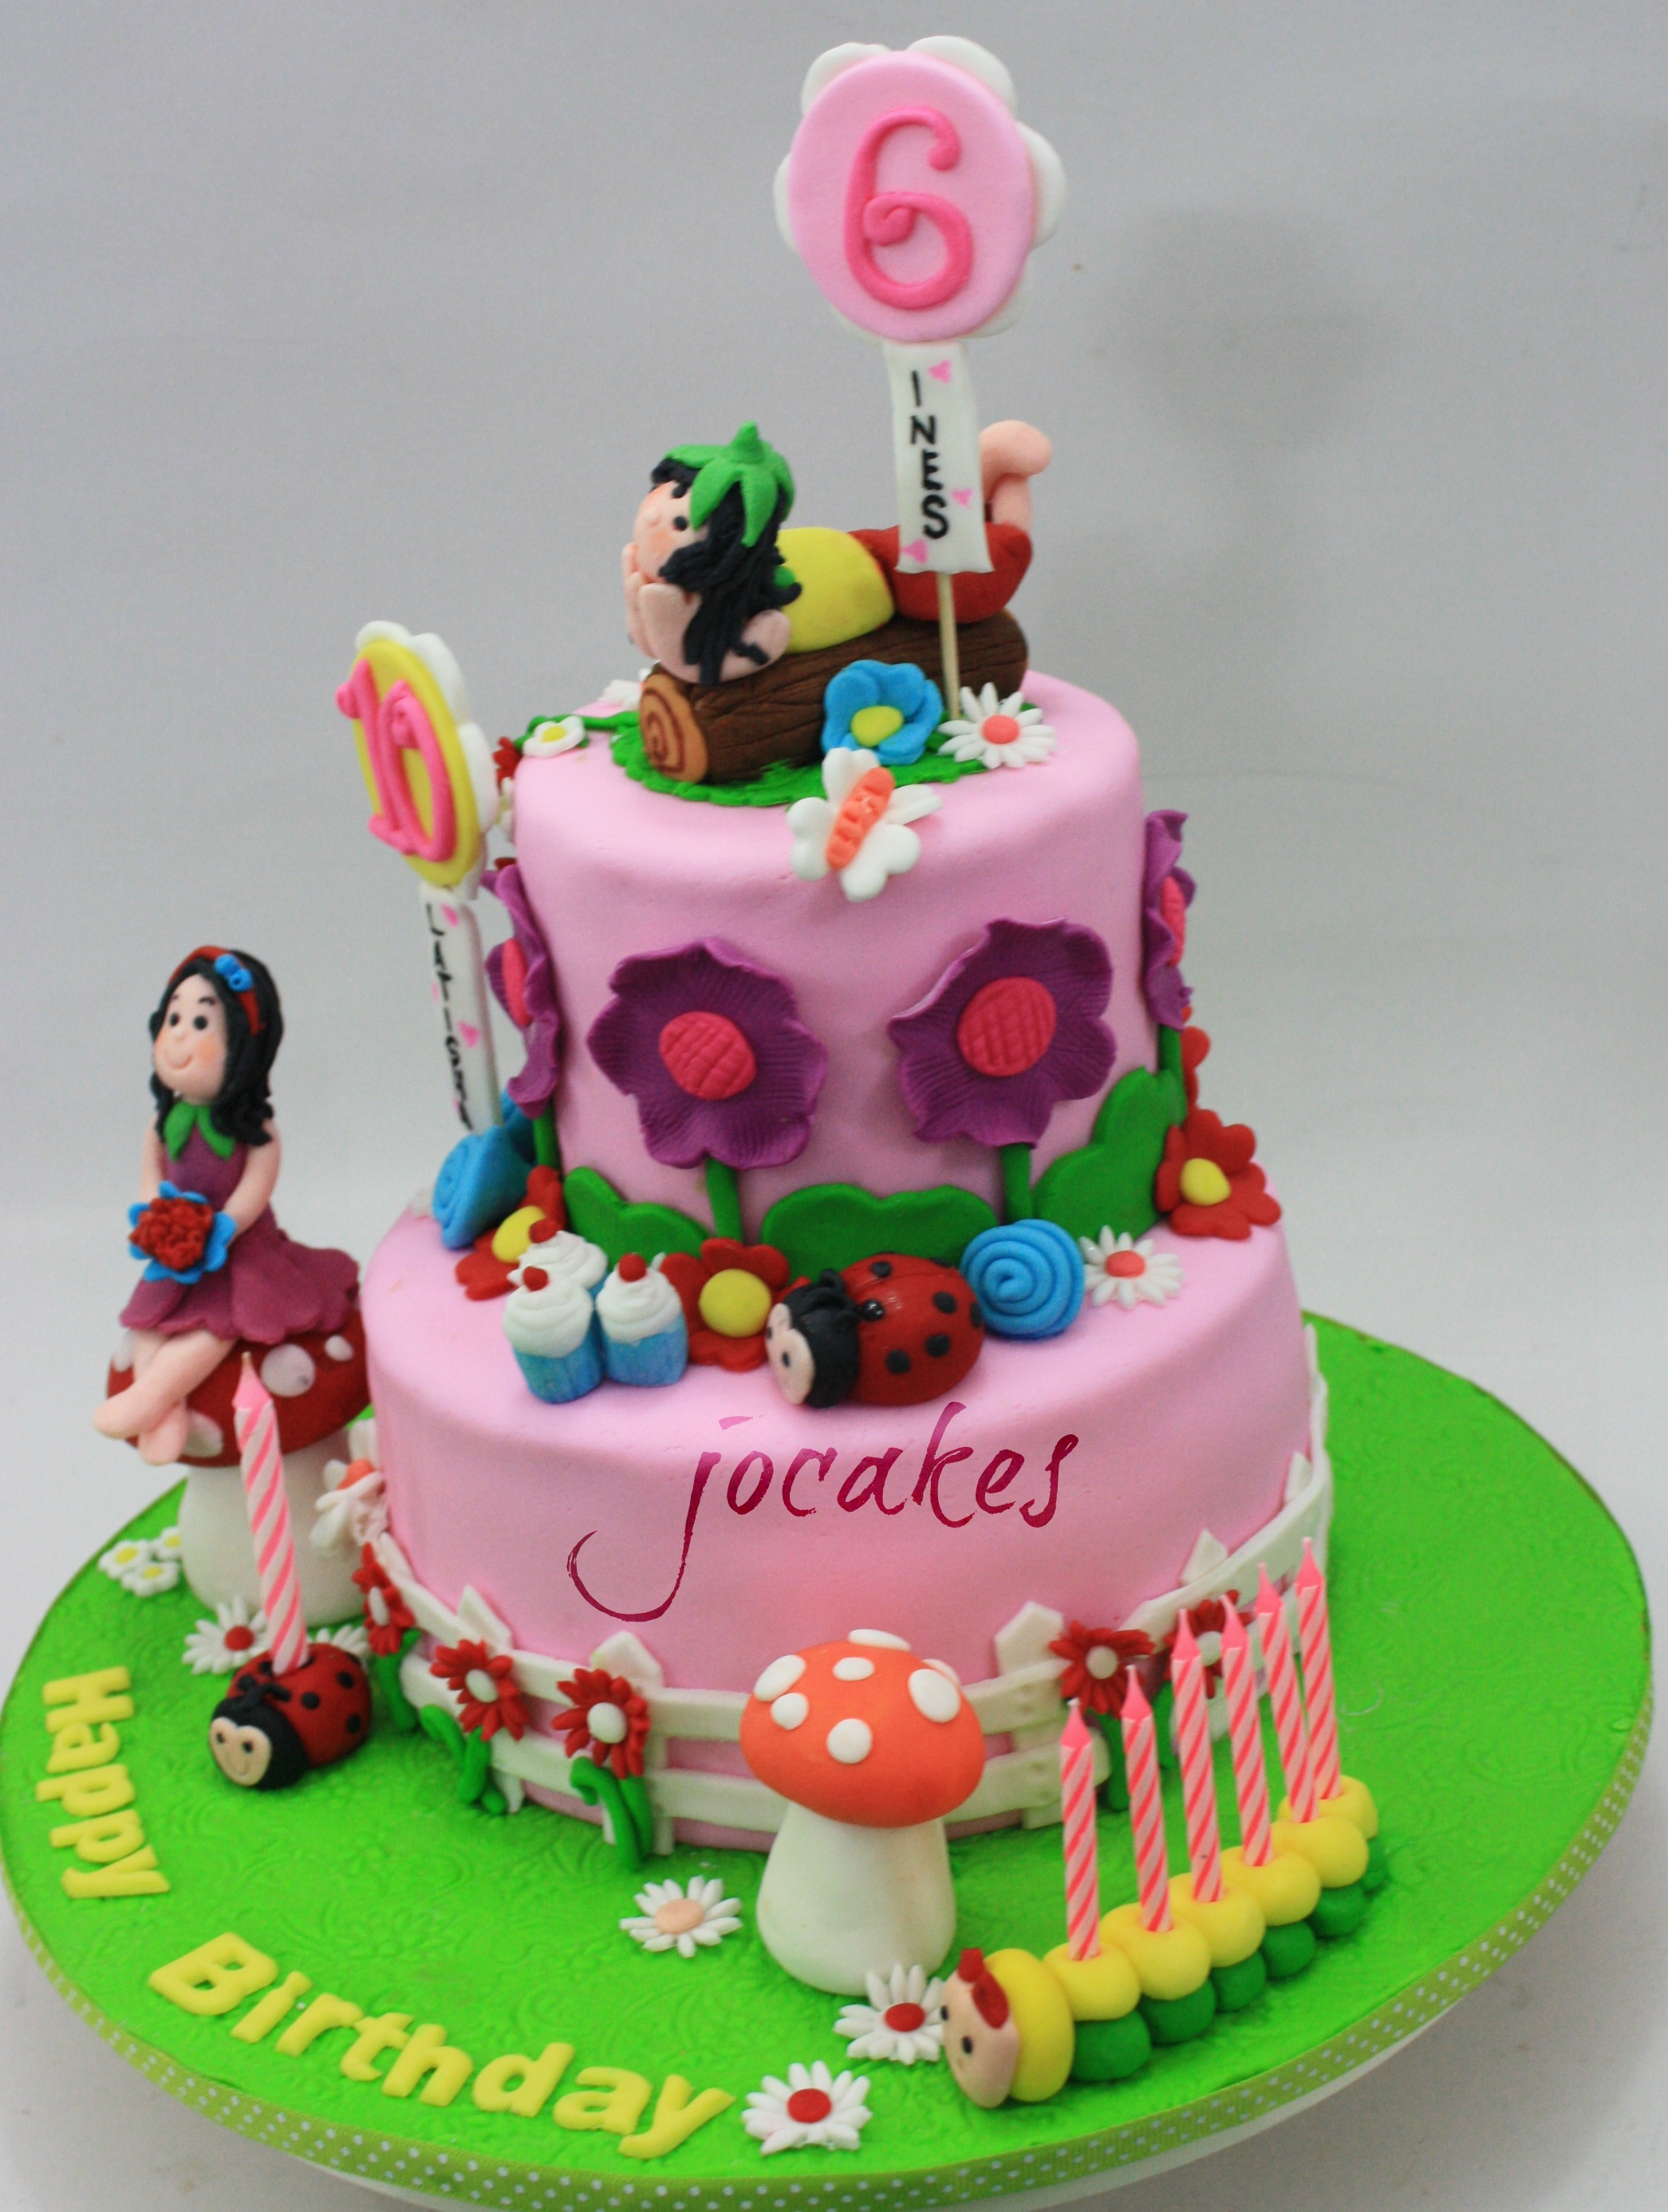 11 year old birthday cake design ; 6-year-old-girl-birthday-cakes_677642